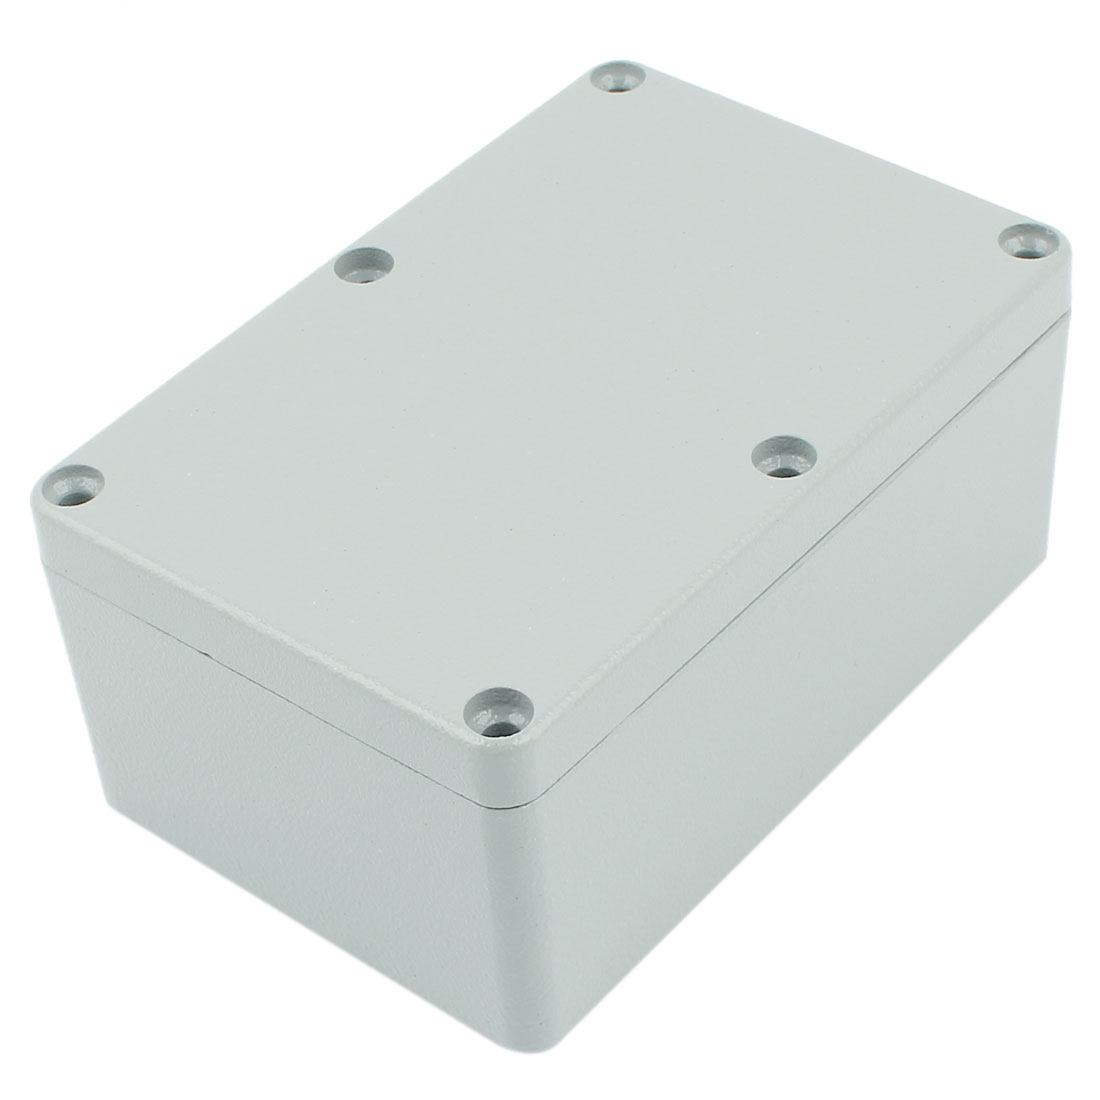 120mm x 80mm x 55mm Waterproof Aluminium Alloy Sealed Electrical Junction Box